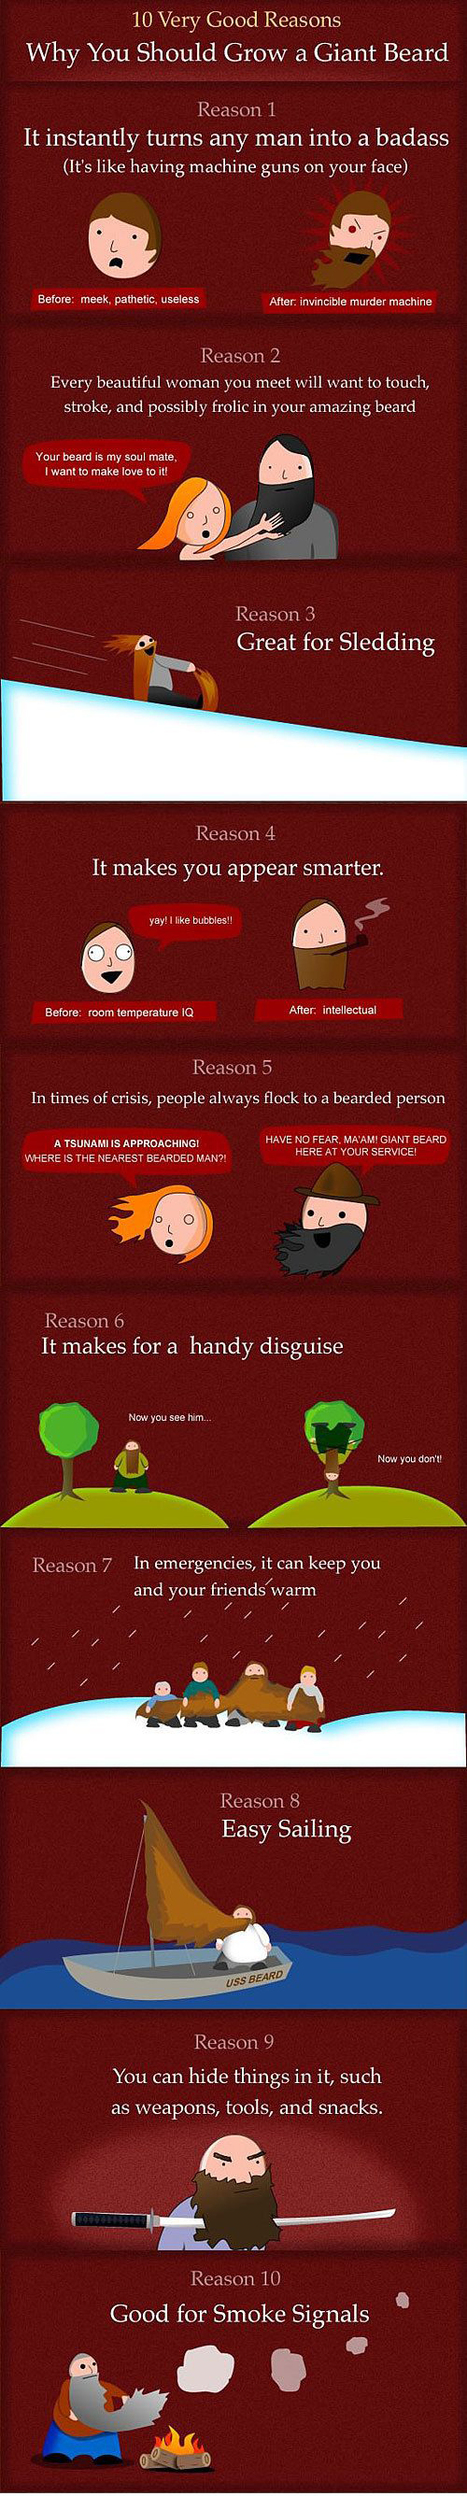 10 Good Reasons Why You Should Grow A Giant Beard [Infographic] | Digital-News on Scoop.it today | Scoop.it